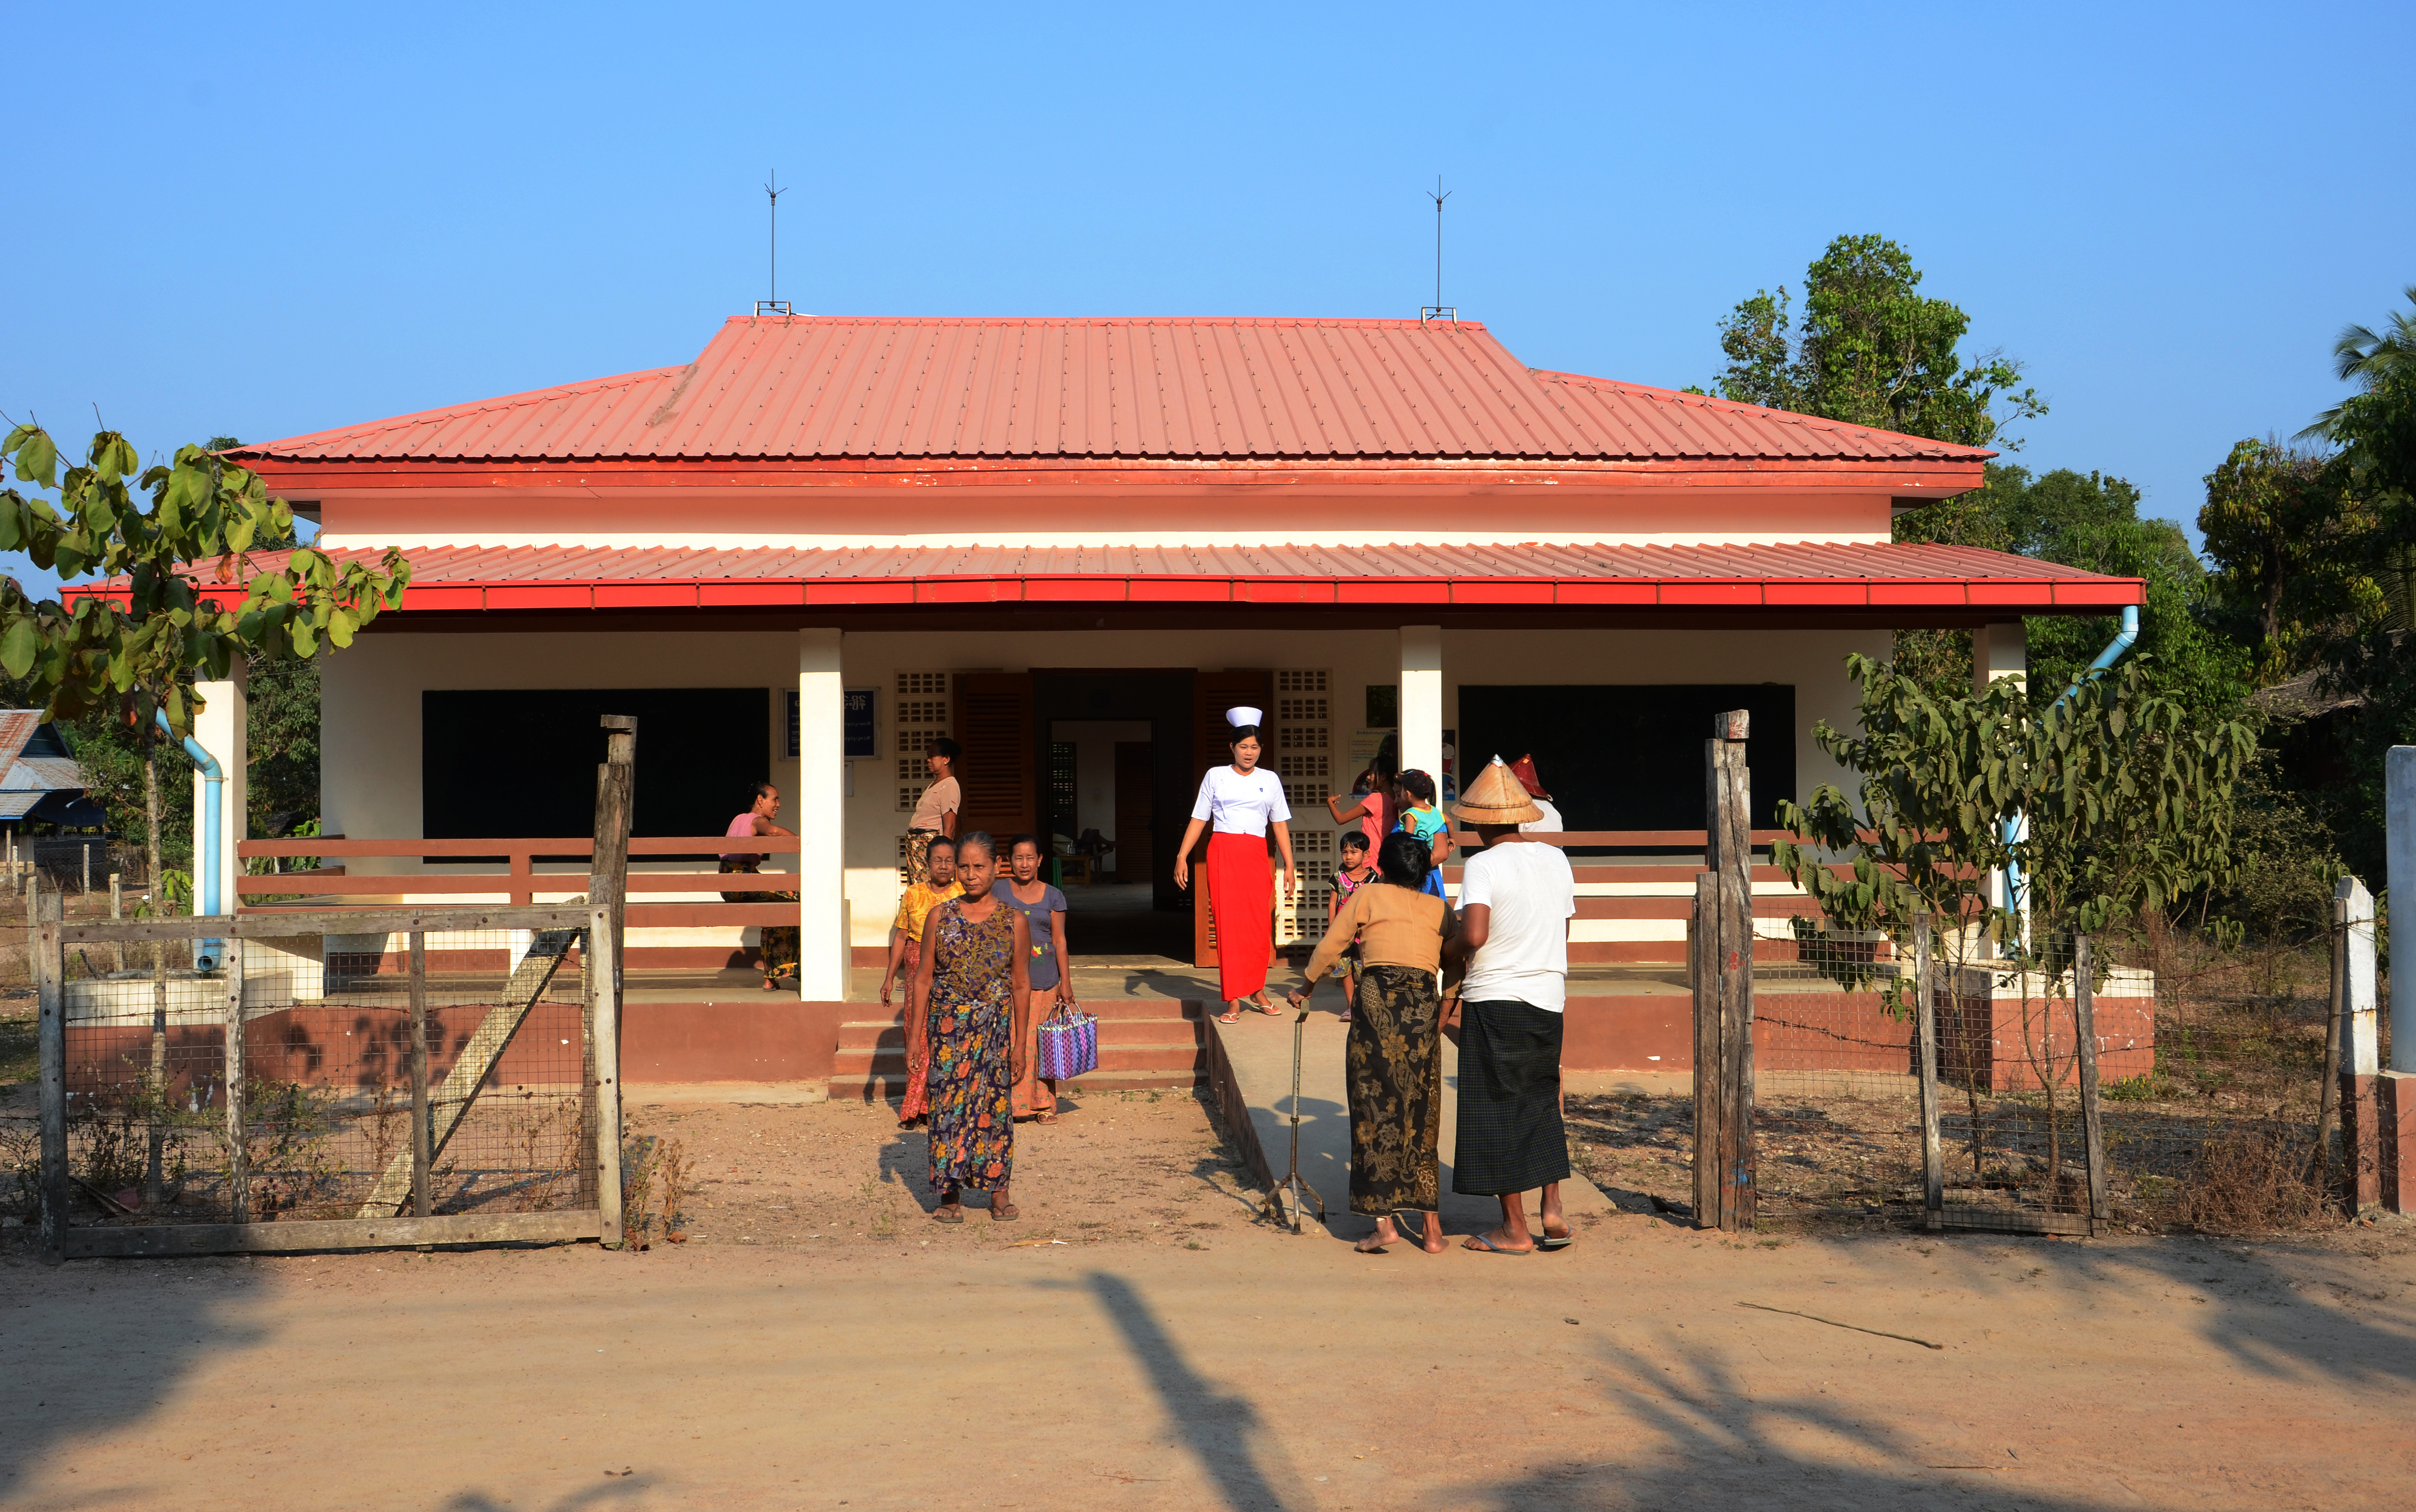 A nurse receives patients at the entrance to a health centre.